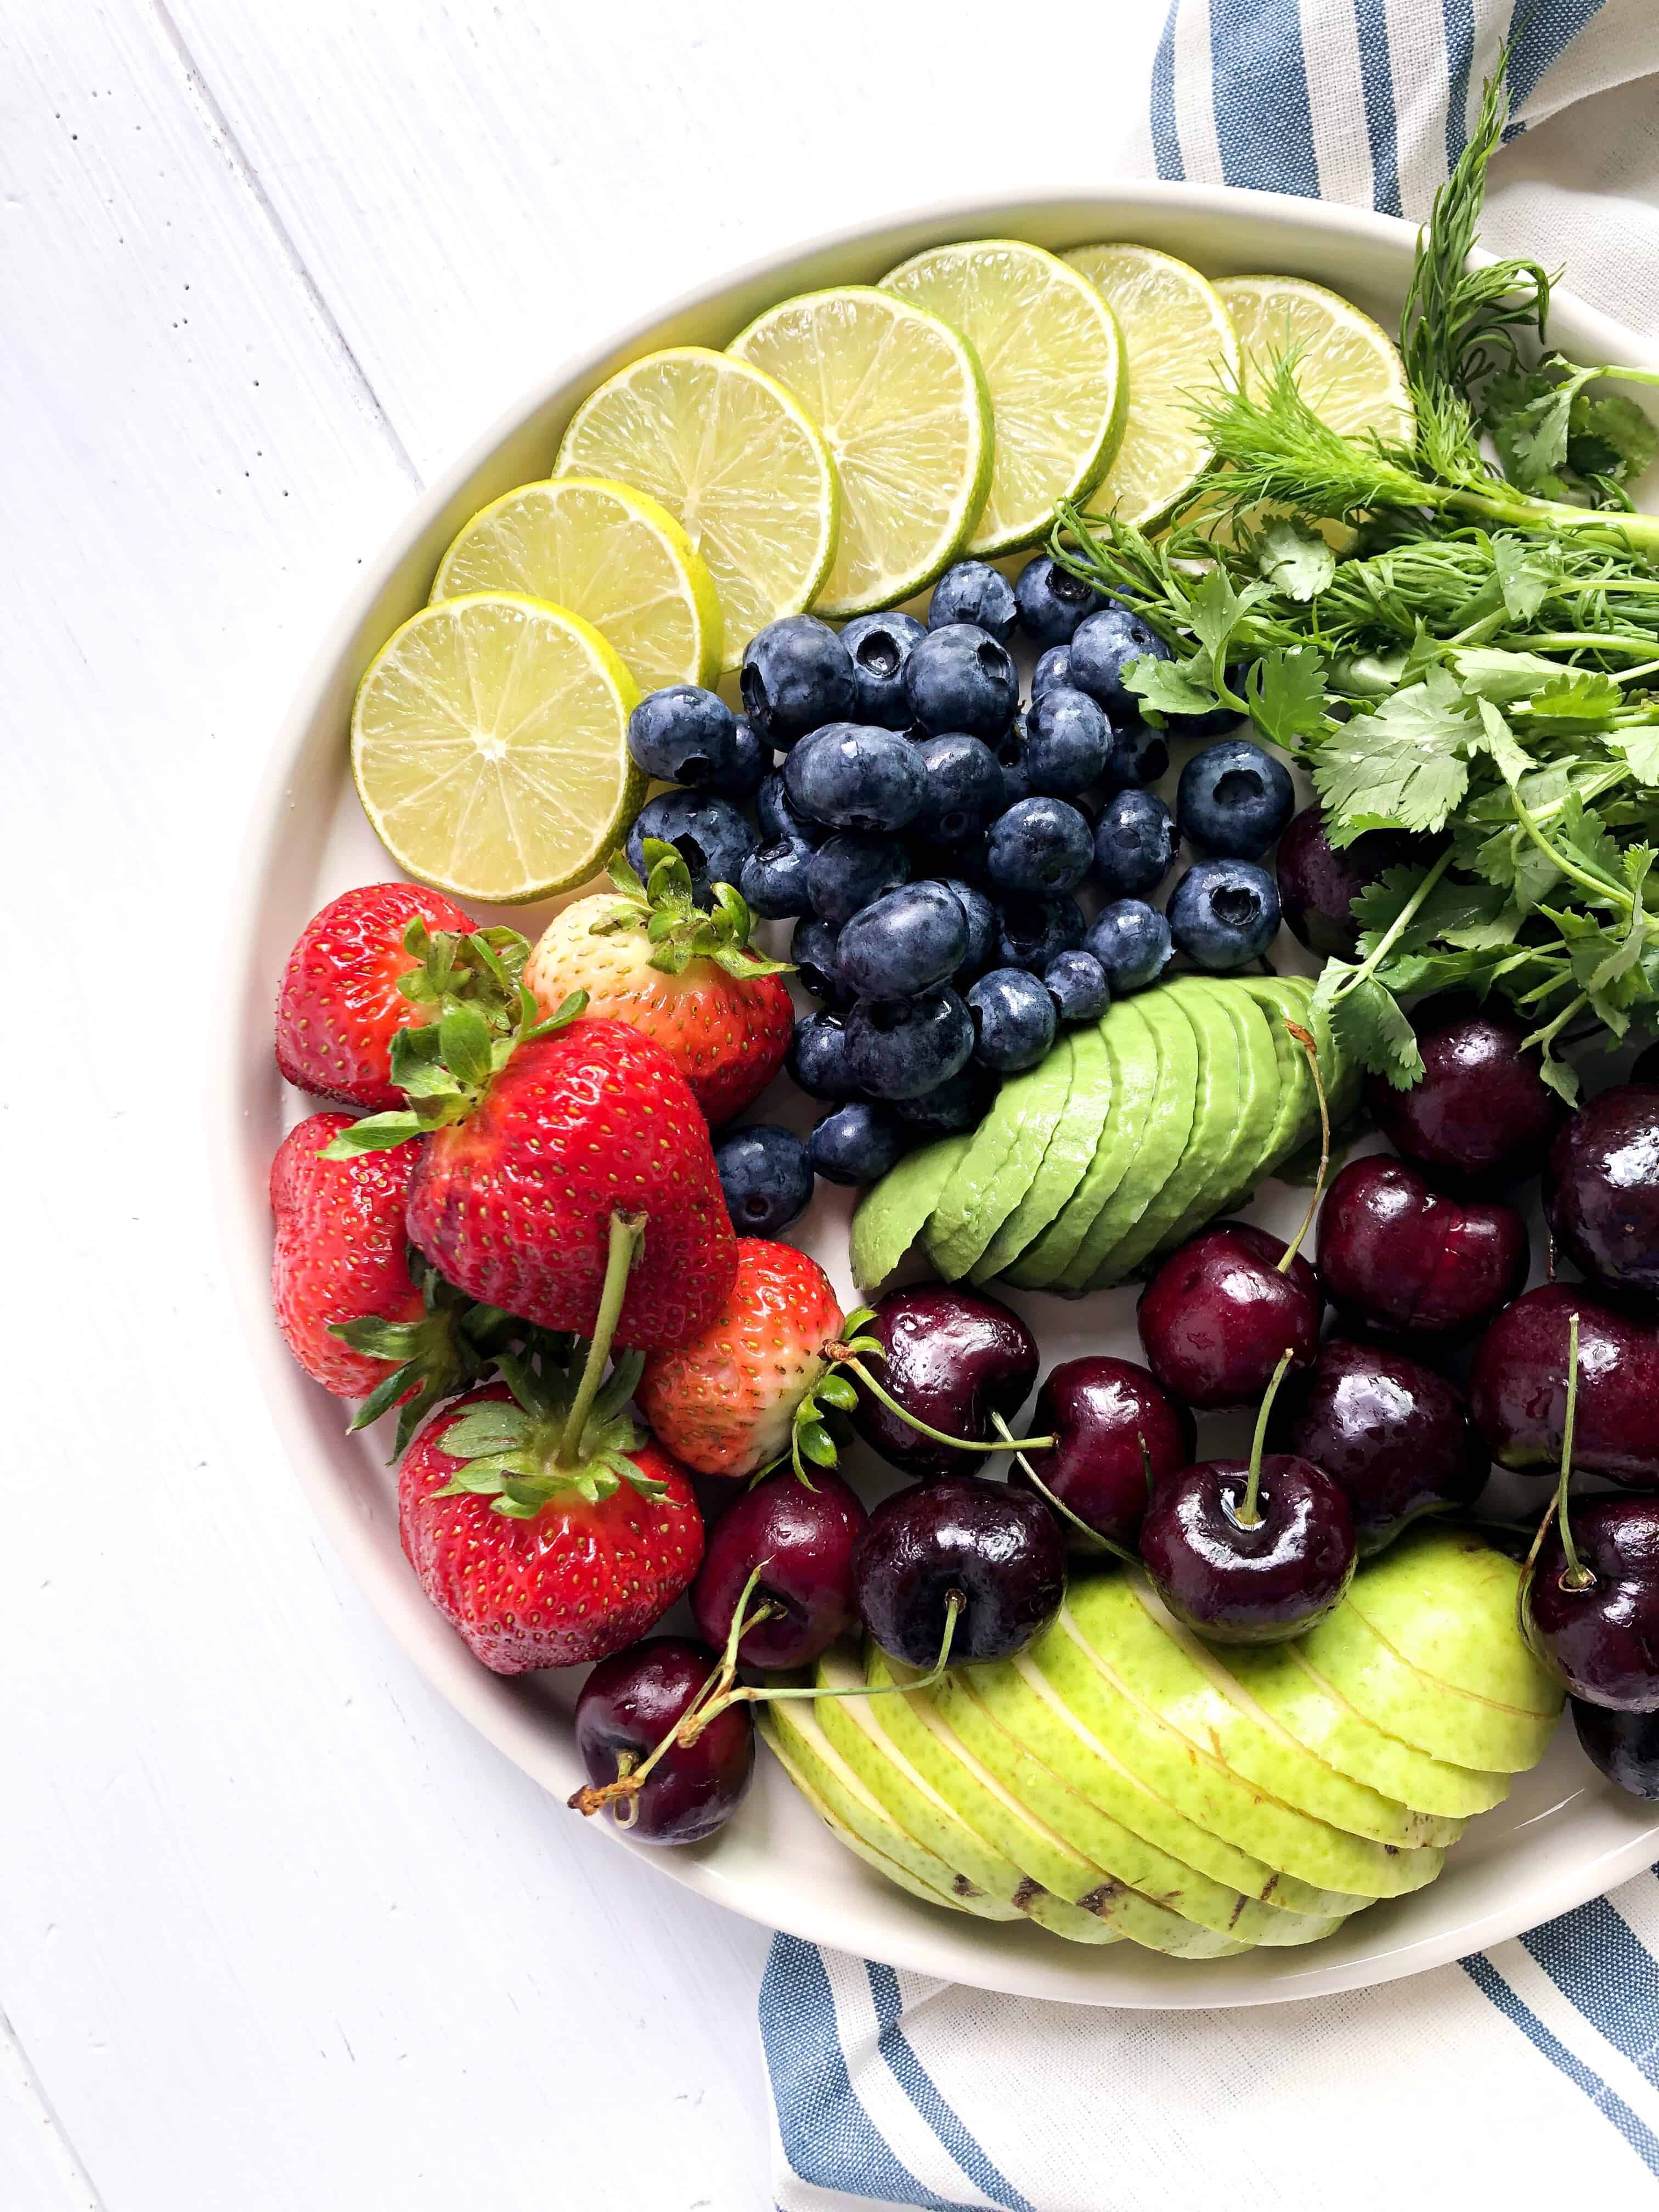 A plate full of freshly cut fruit and limes